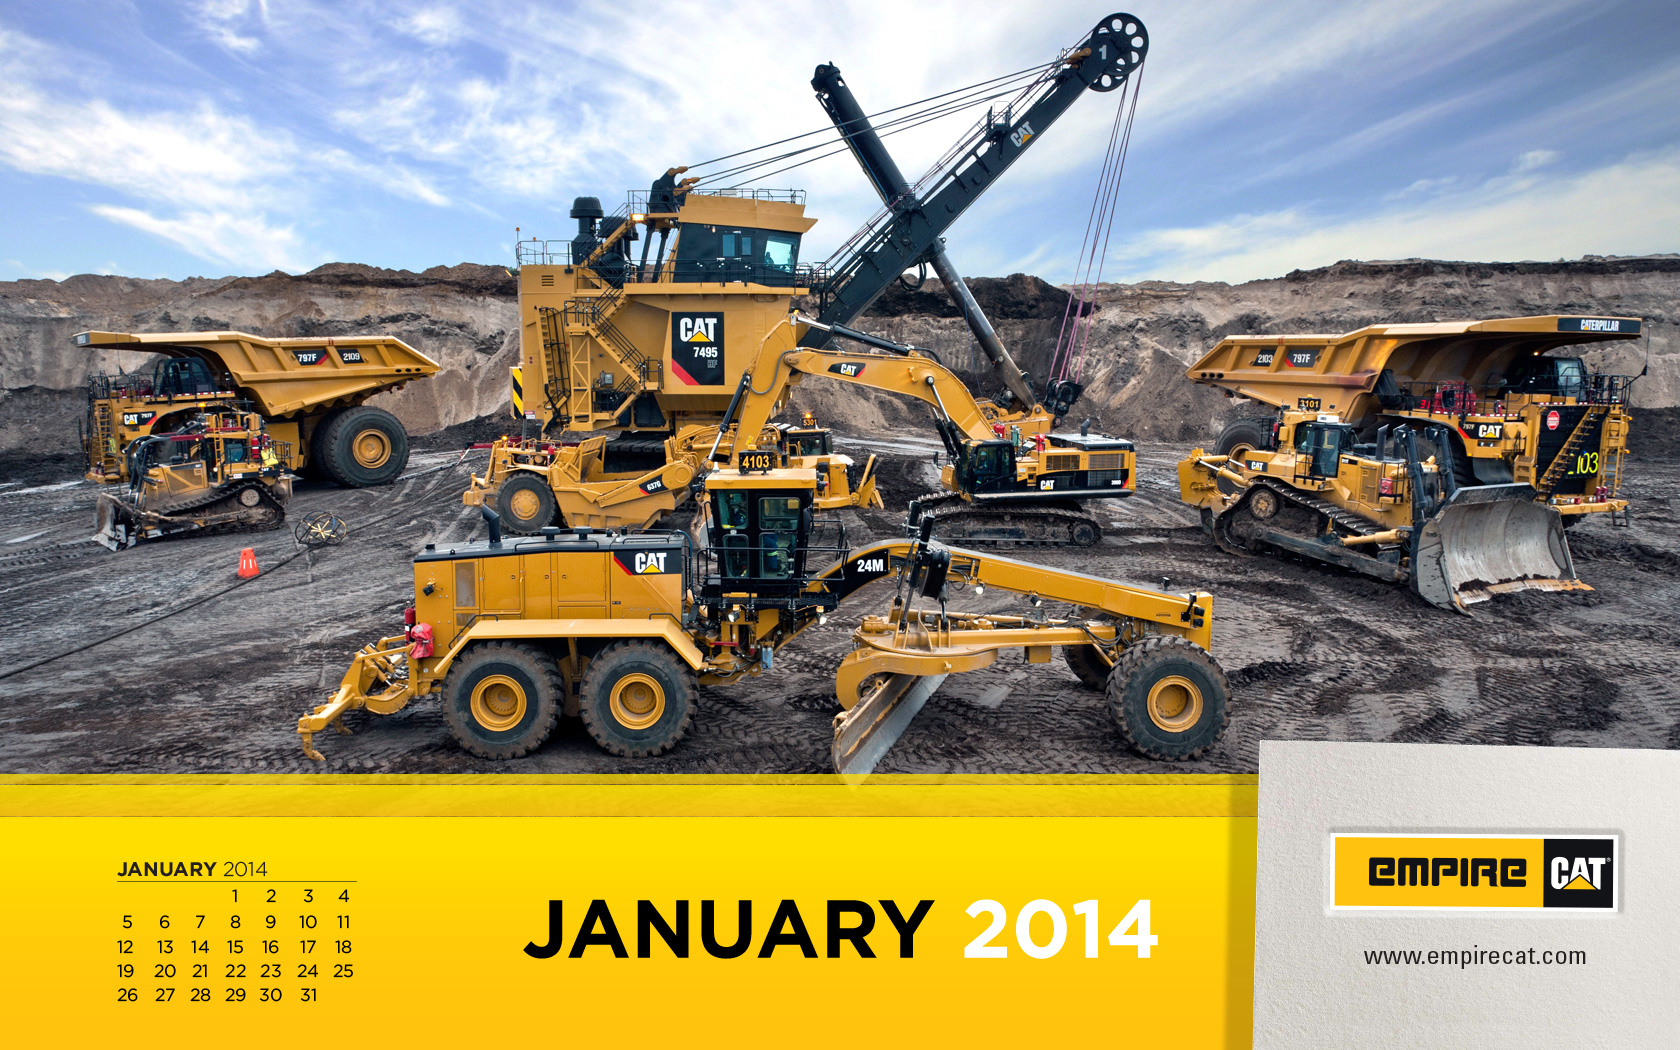 Caterpillar Equipment Wallpaper Logo Cat expanded mining product 1680x1050